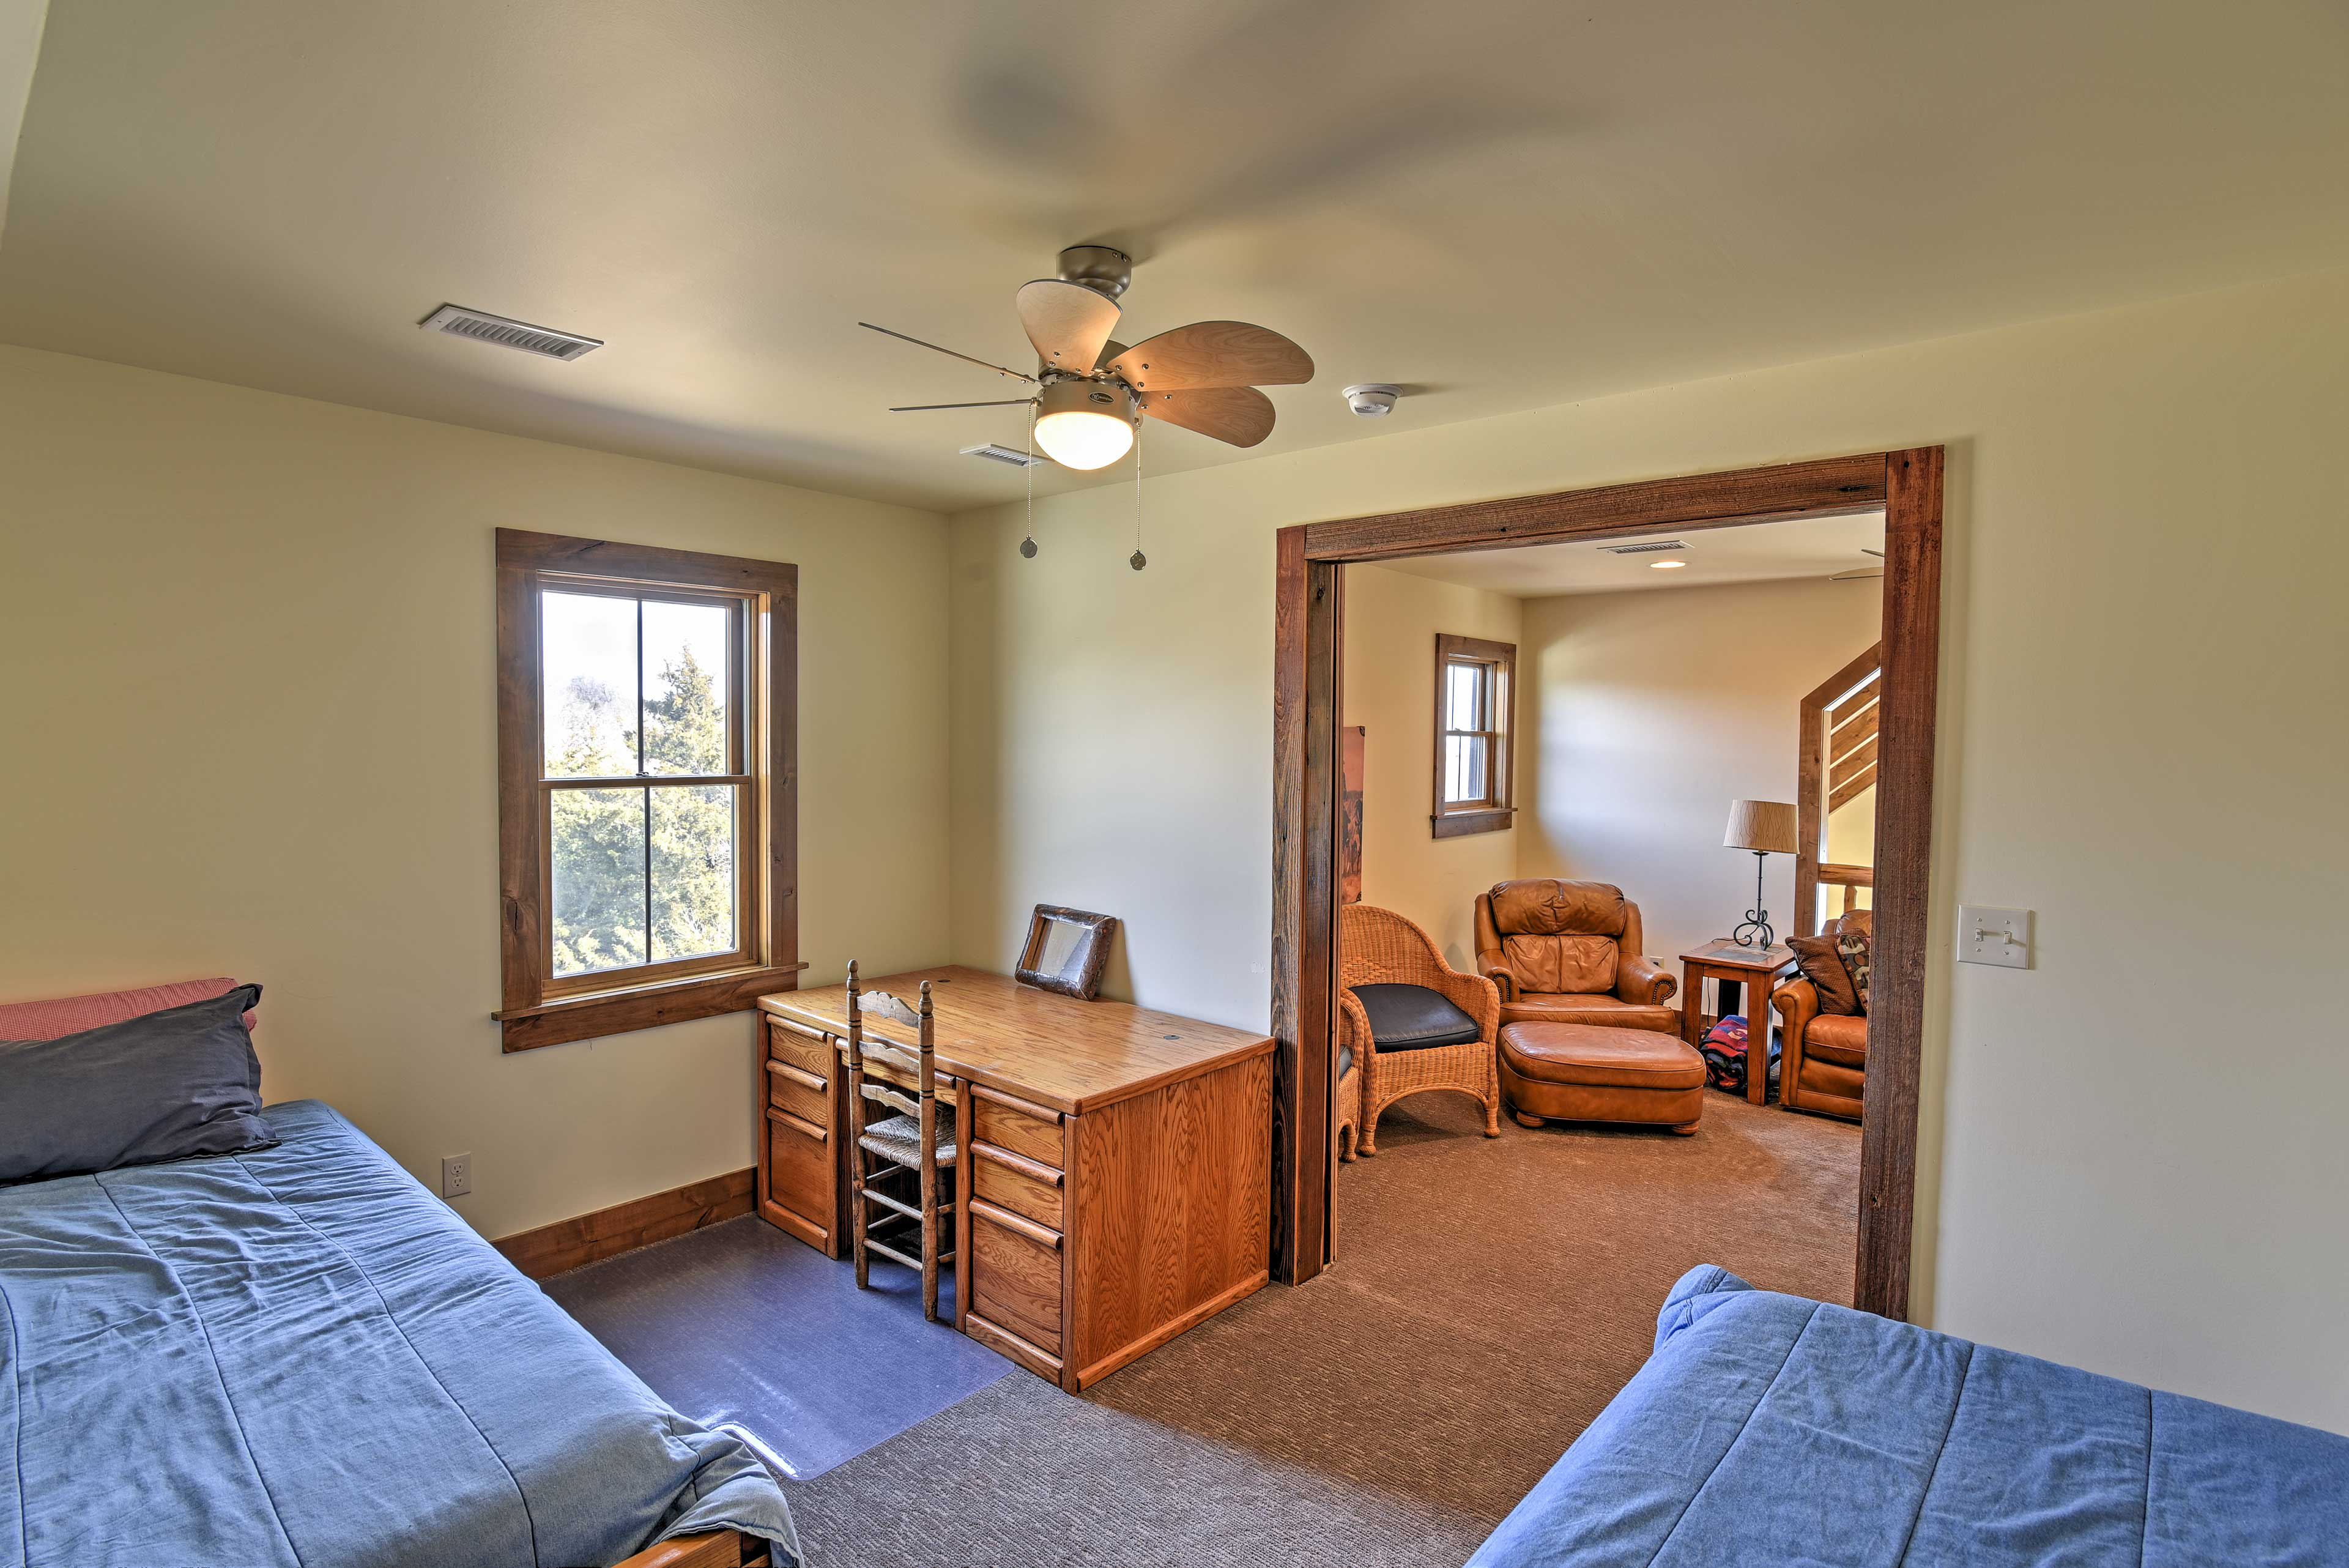 The final bedroom has 2 plush twin mattresses and a desk.